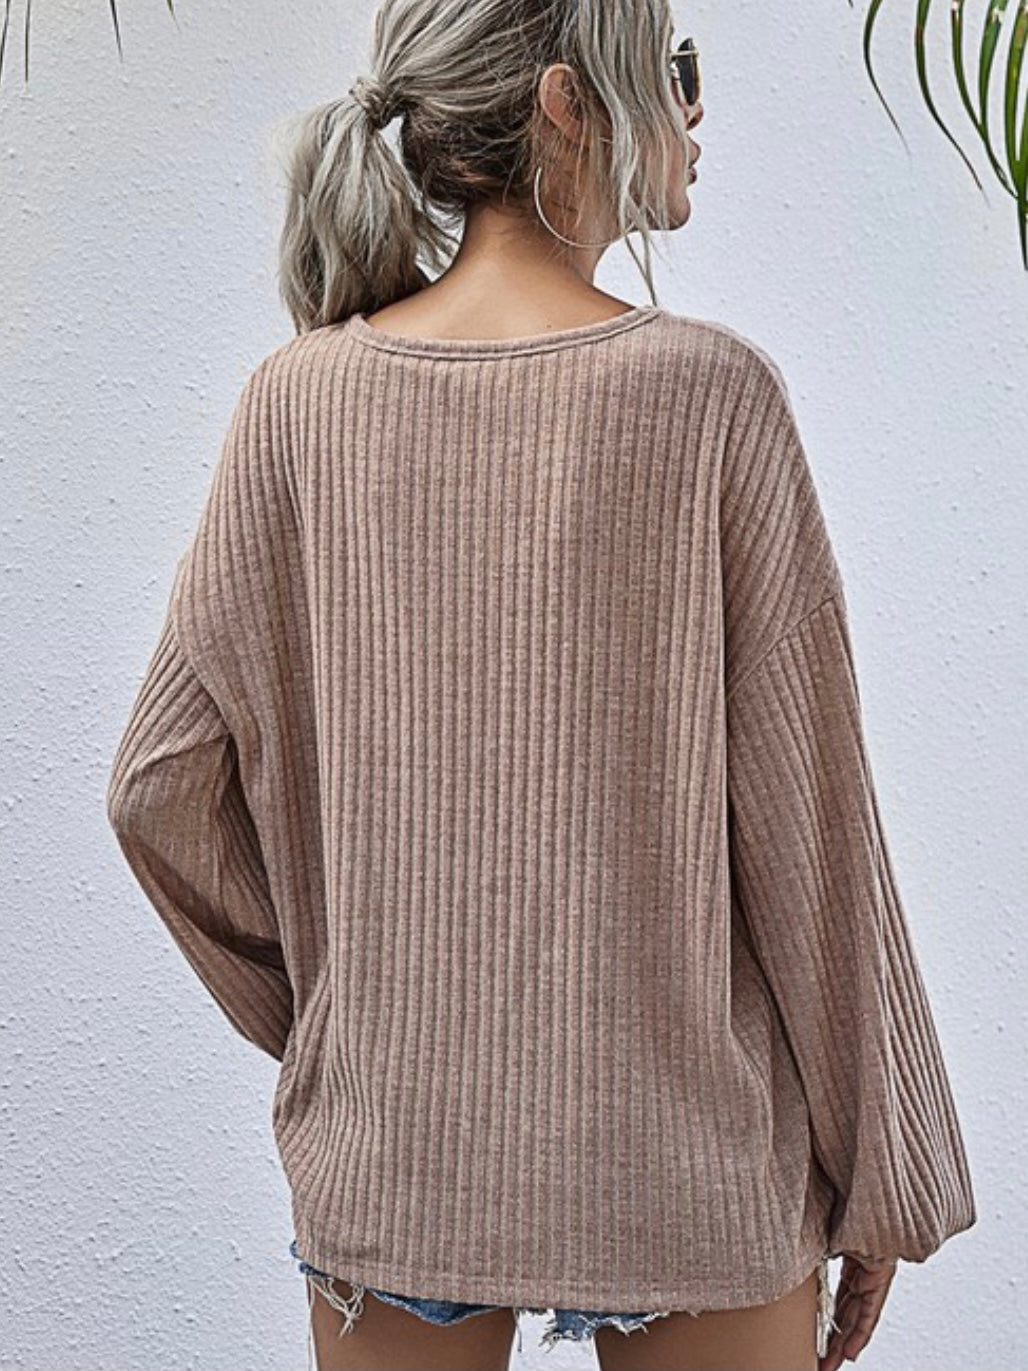 BEAUTIFUL LIFE - SUPER SOFT BLUSH BELL SLEEVE TOP